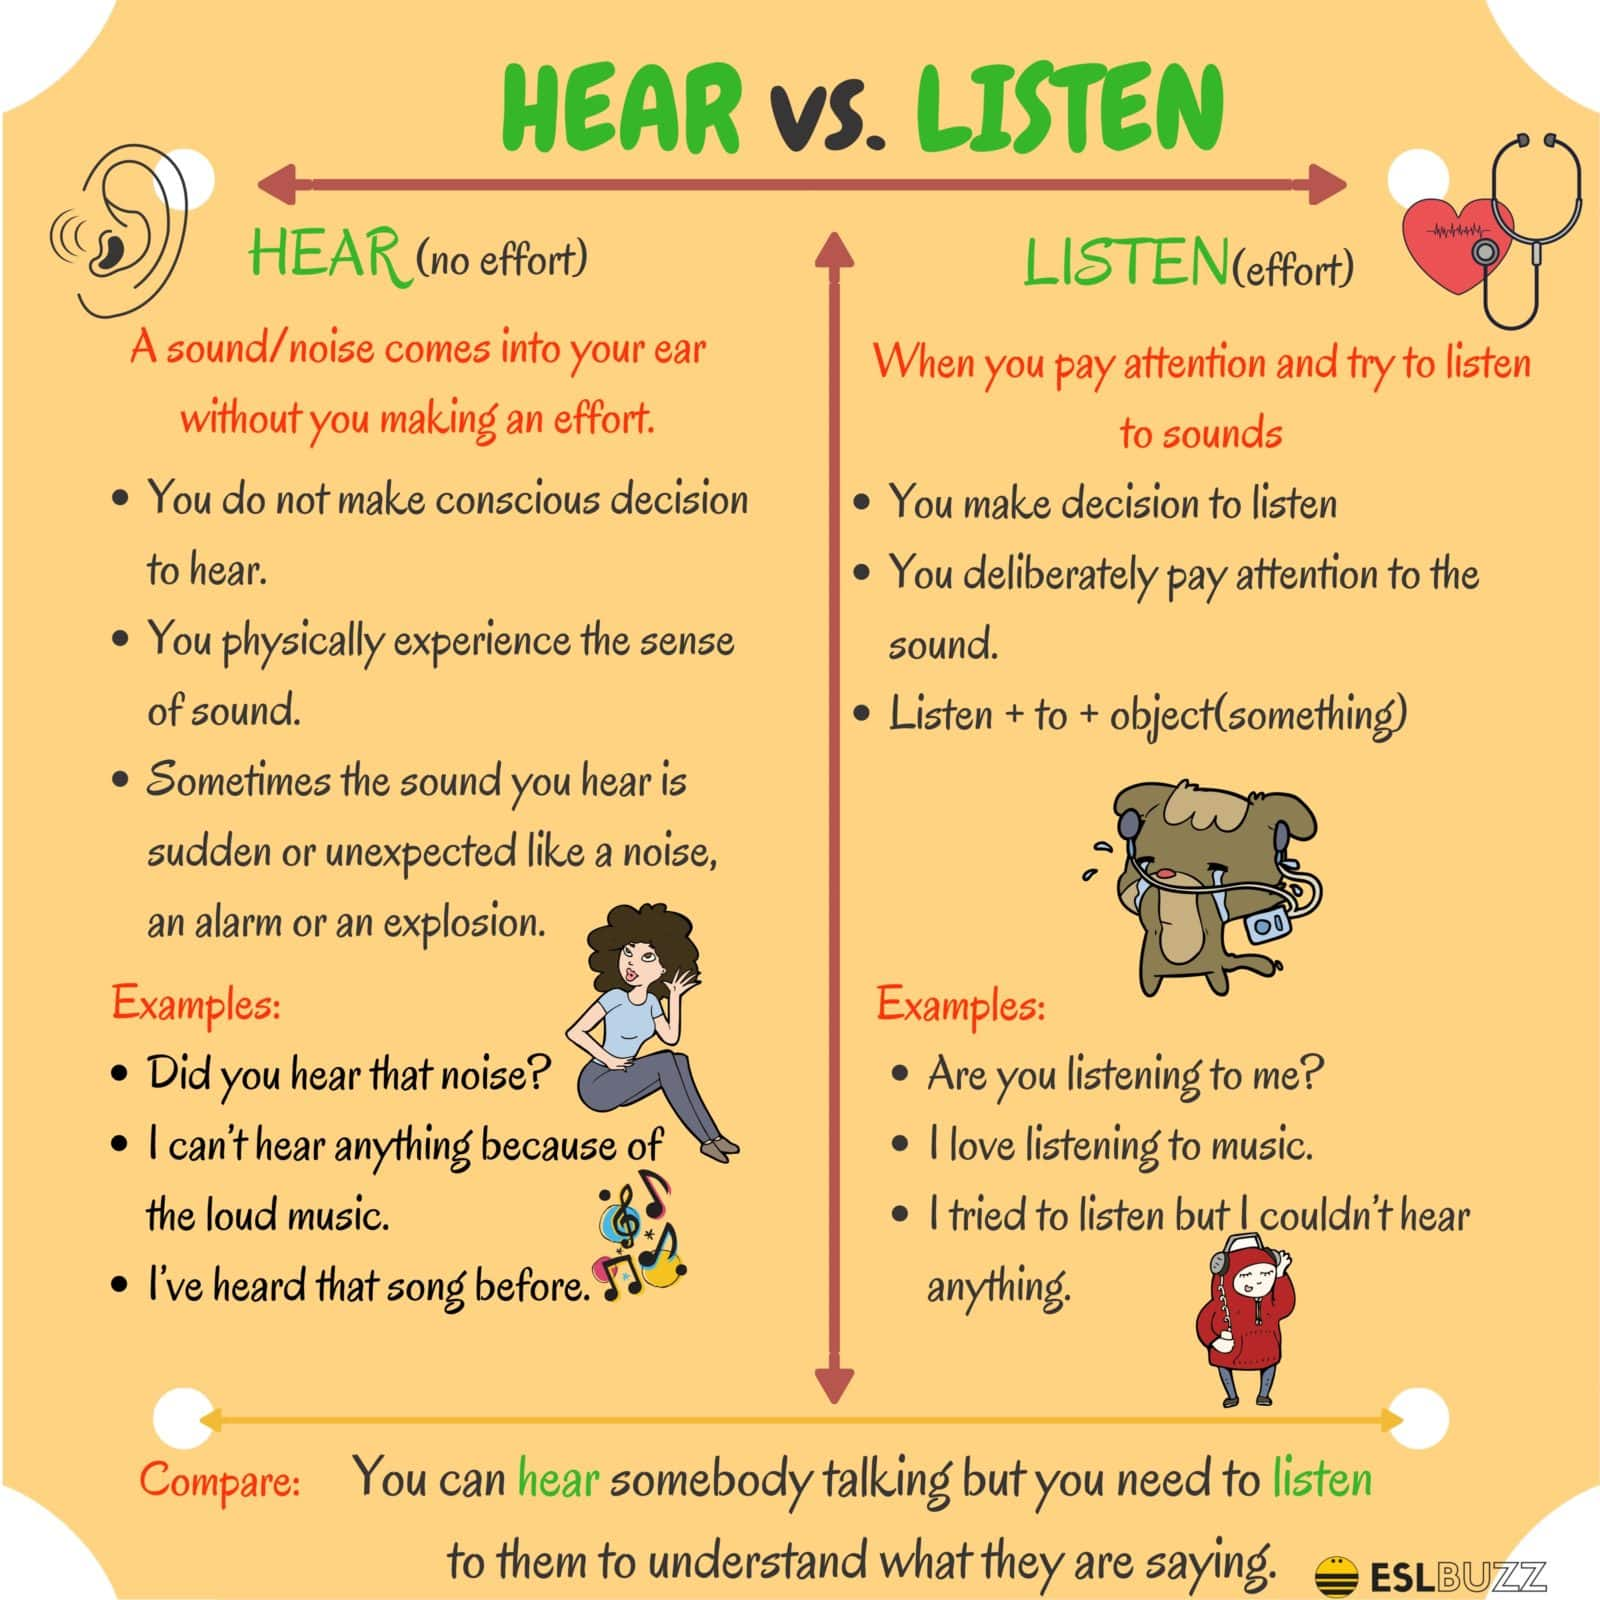 Difference between HEAR and LISTEN